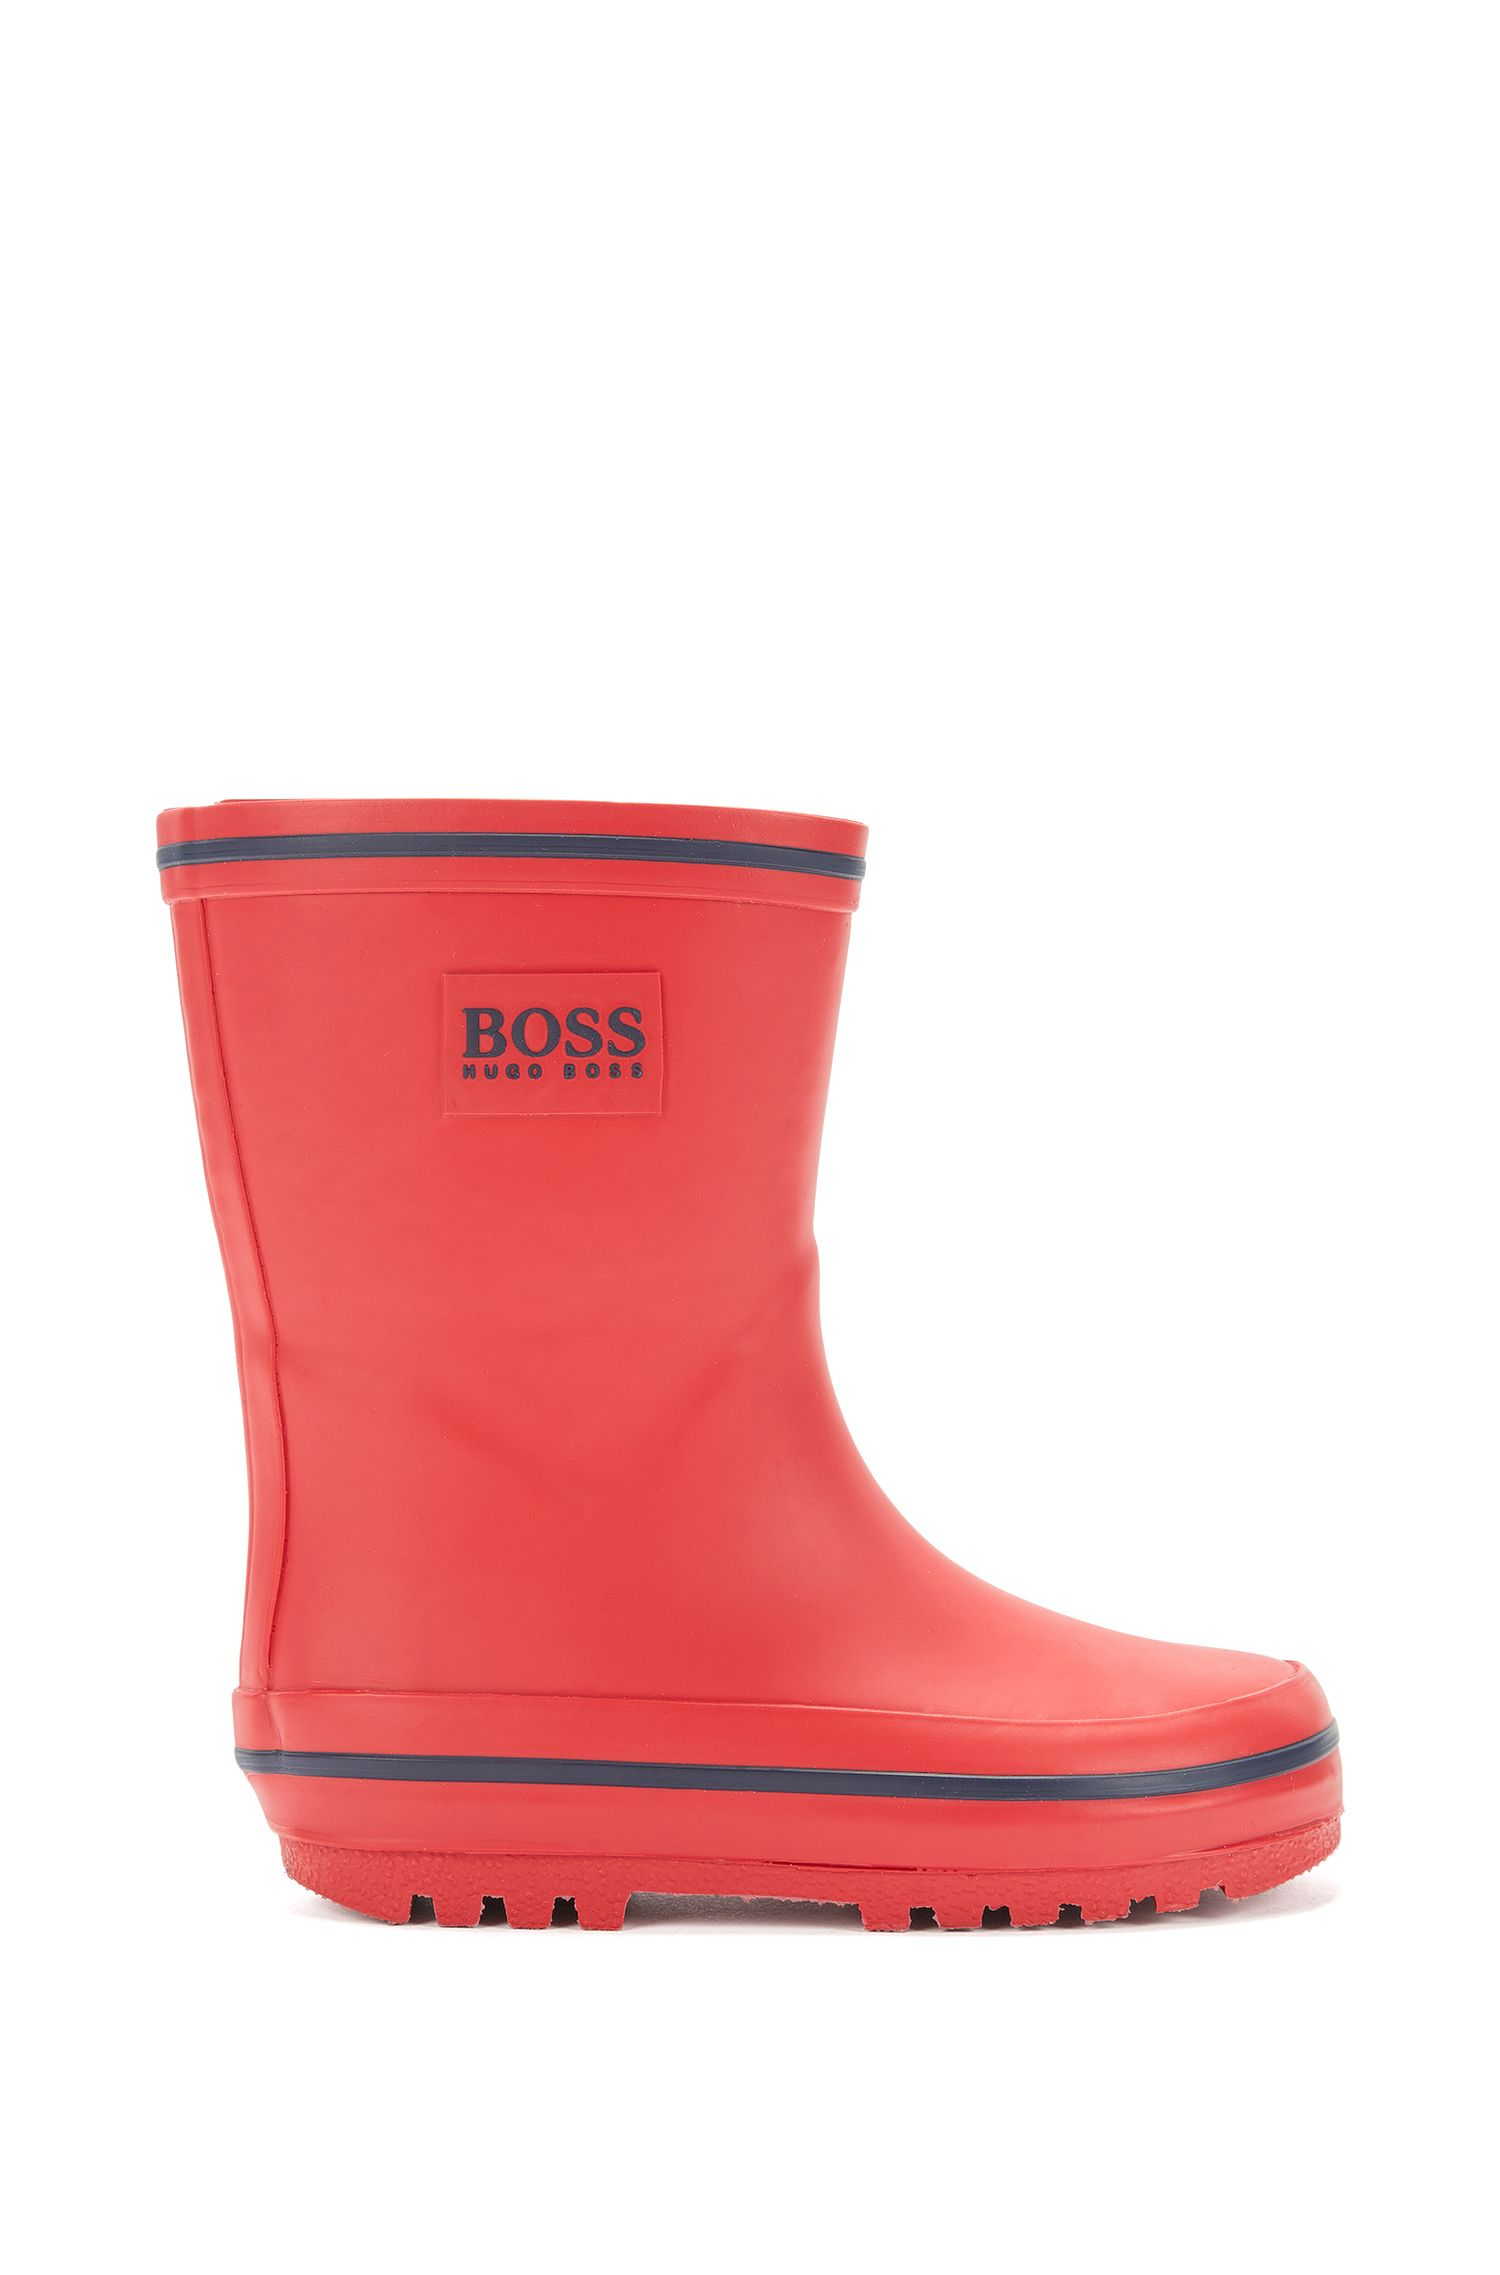 Kids' wellington boots in durable rubber